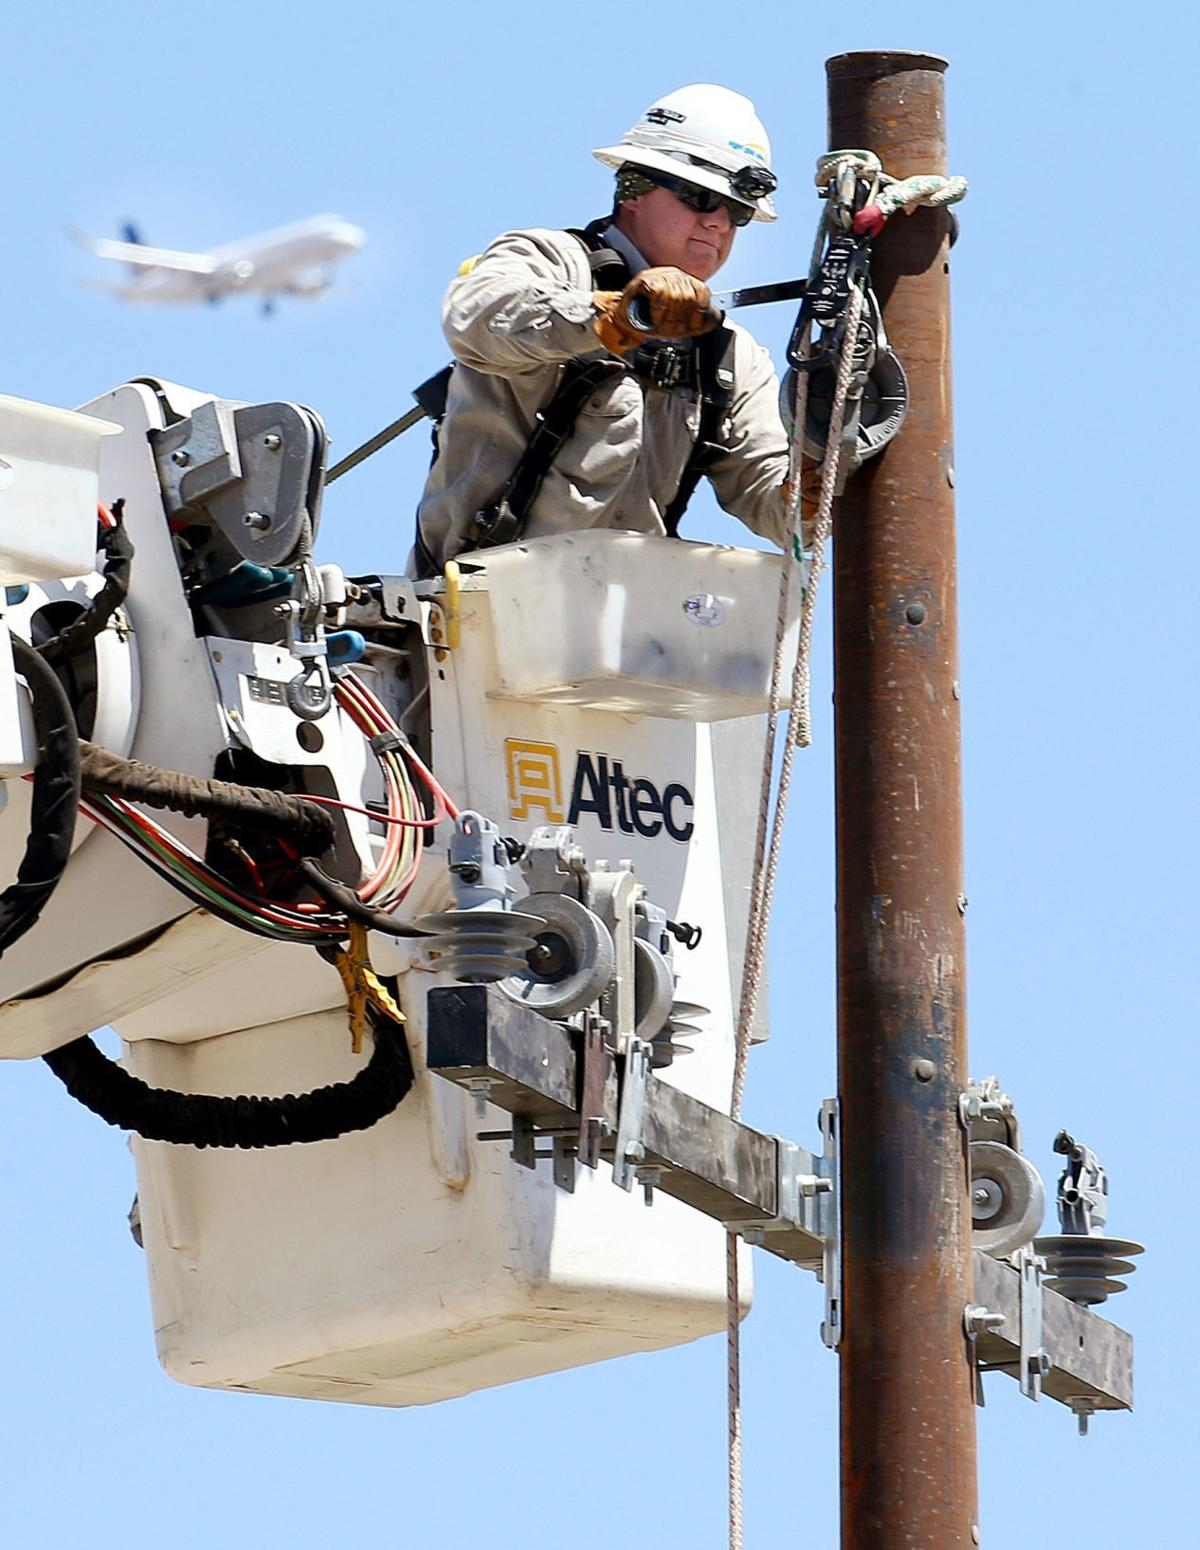 TEP service upgrades in Midvale Park